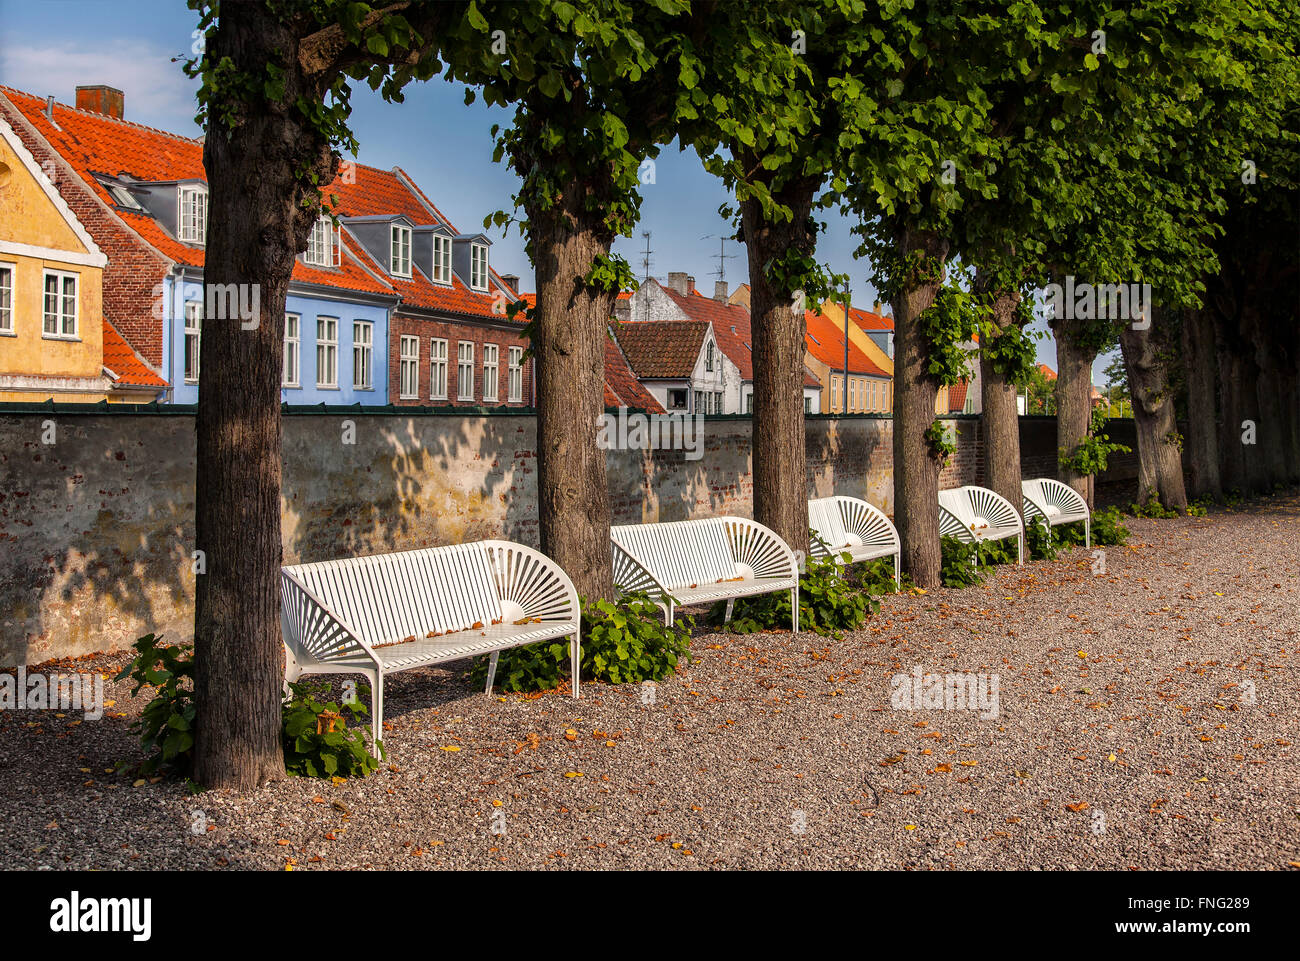 Image of a row of park benches. Helsingor, Denmark. - Stock Image